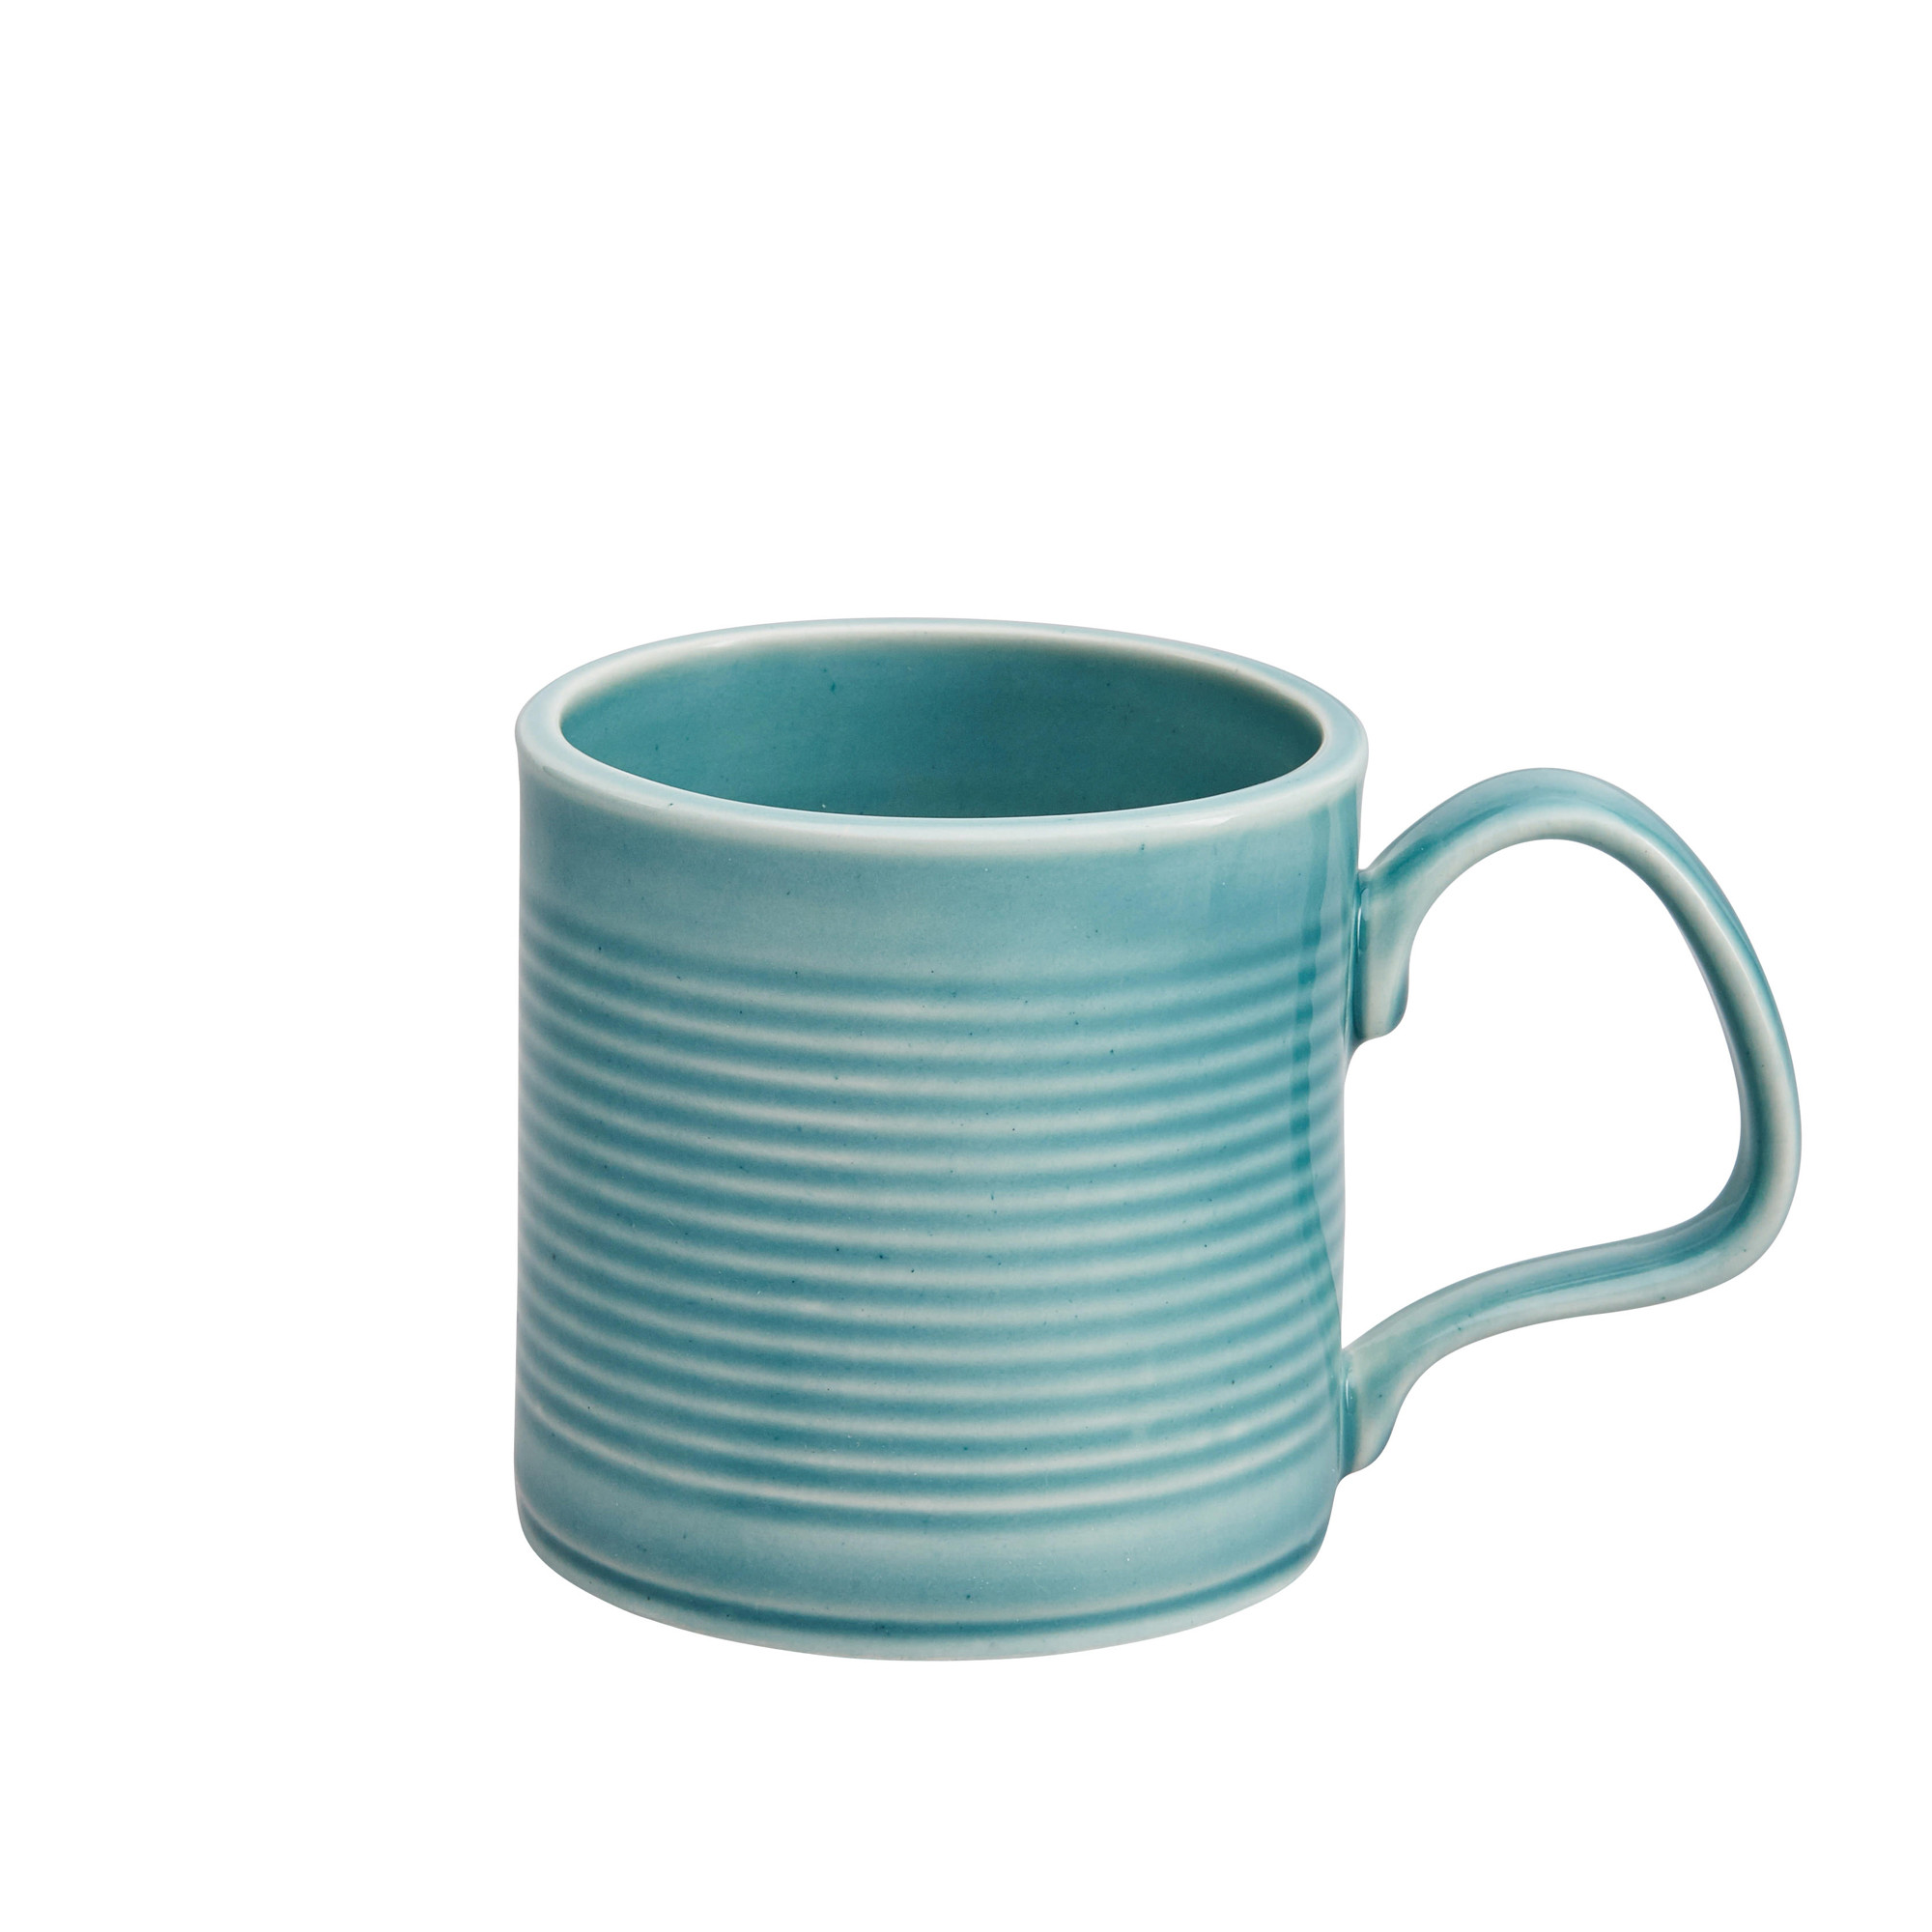 "<span class=""link fancybox-details-link""><a href=""/artists/37-stolen-form/works/1483-stolen-form-tin-can-mug-small-blue-2017/"">View Detail Page</a></span><div class=""artist""><strong>Stolen Form</strong></div> <div class=""title""><em>Tin Can Mug - Small - Blue</em>, 2017</div> <div class=""medium"">Ceramic</div> <div class=""dimensions"">7.5 x 7.5 x 12 cm</div> <div class=""edition_details""></div><div class=""copyright_line"">Copyright The Artist</div>"